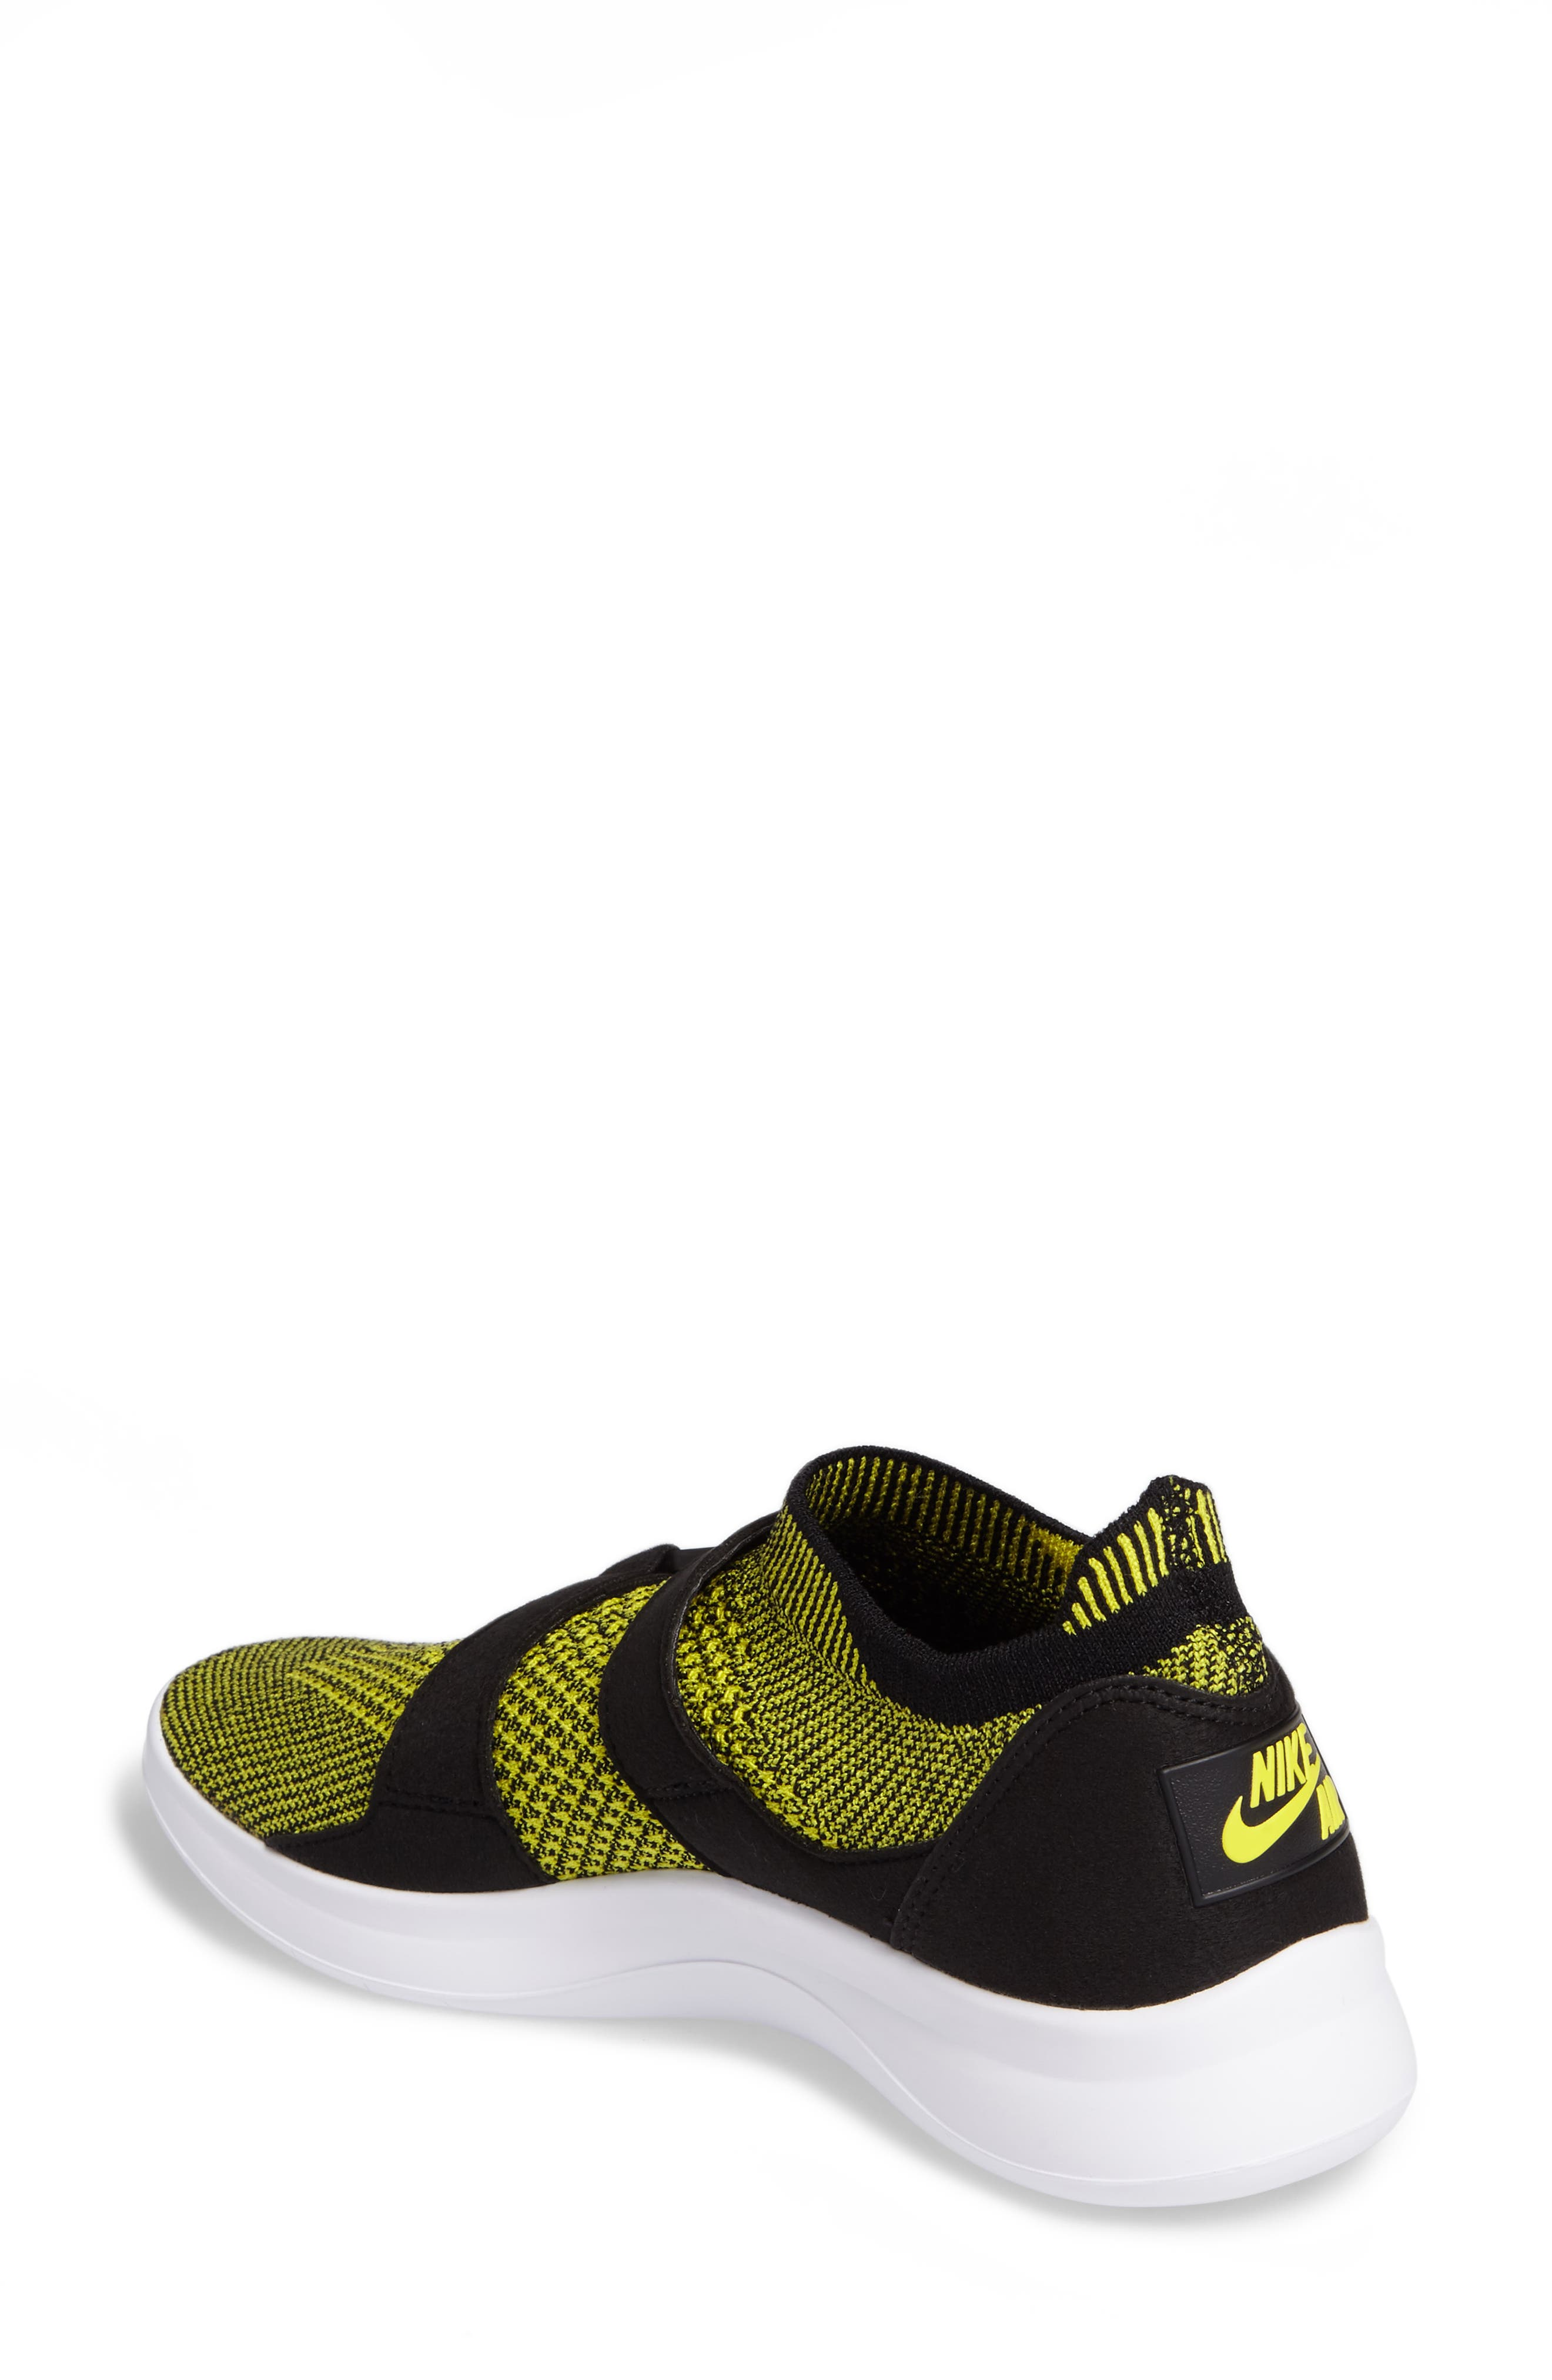 Alternate Image 2  - Nike Air Sock Racer Ultra Flyknit Sneaker (Women)